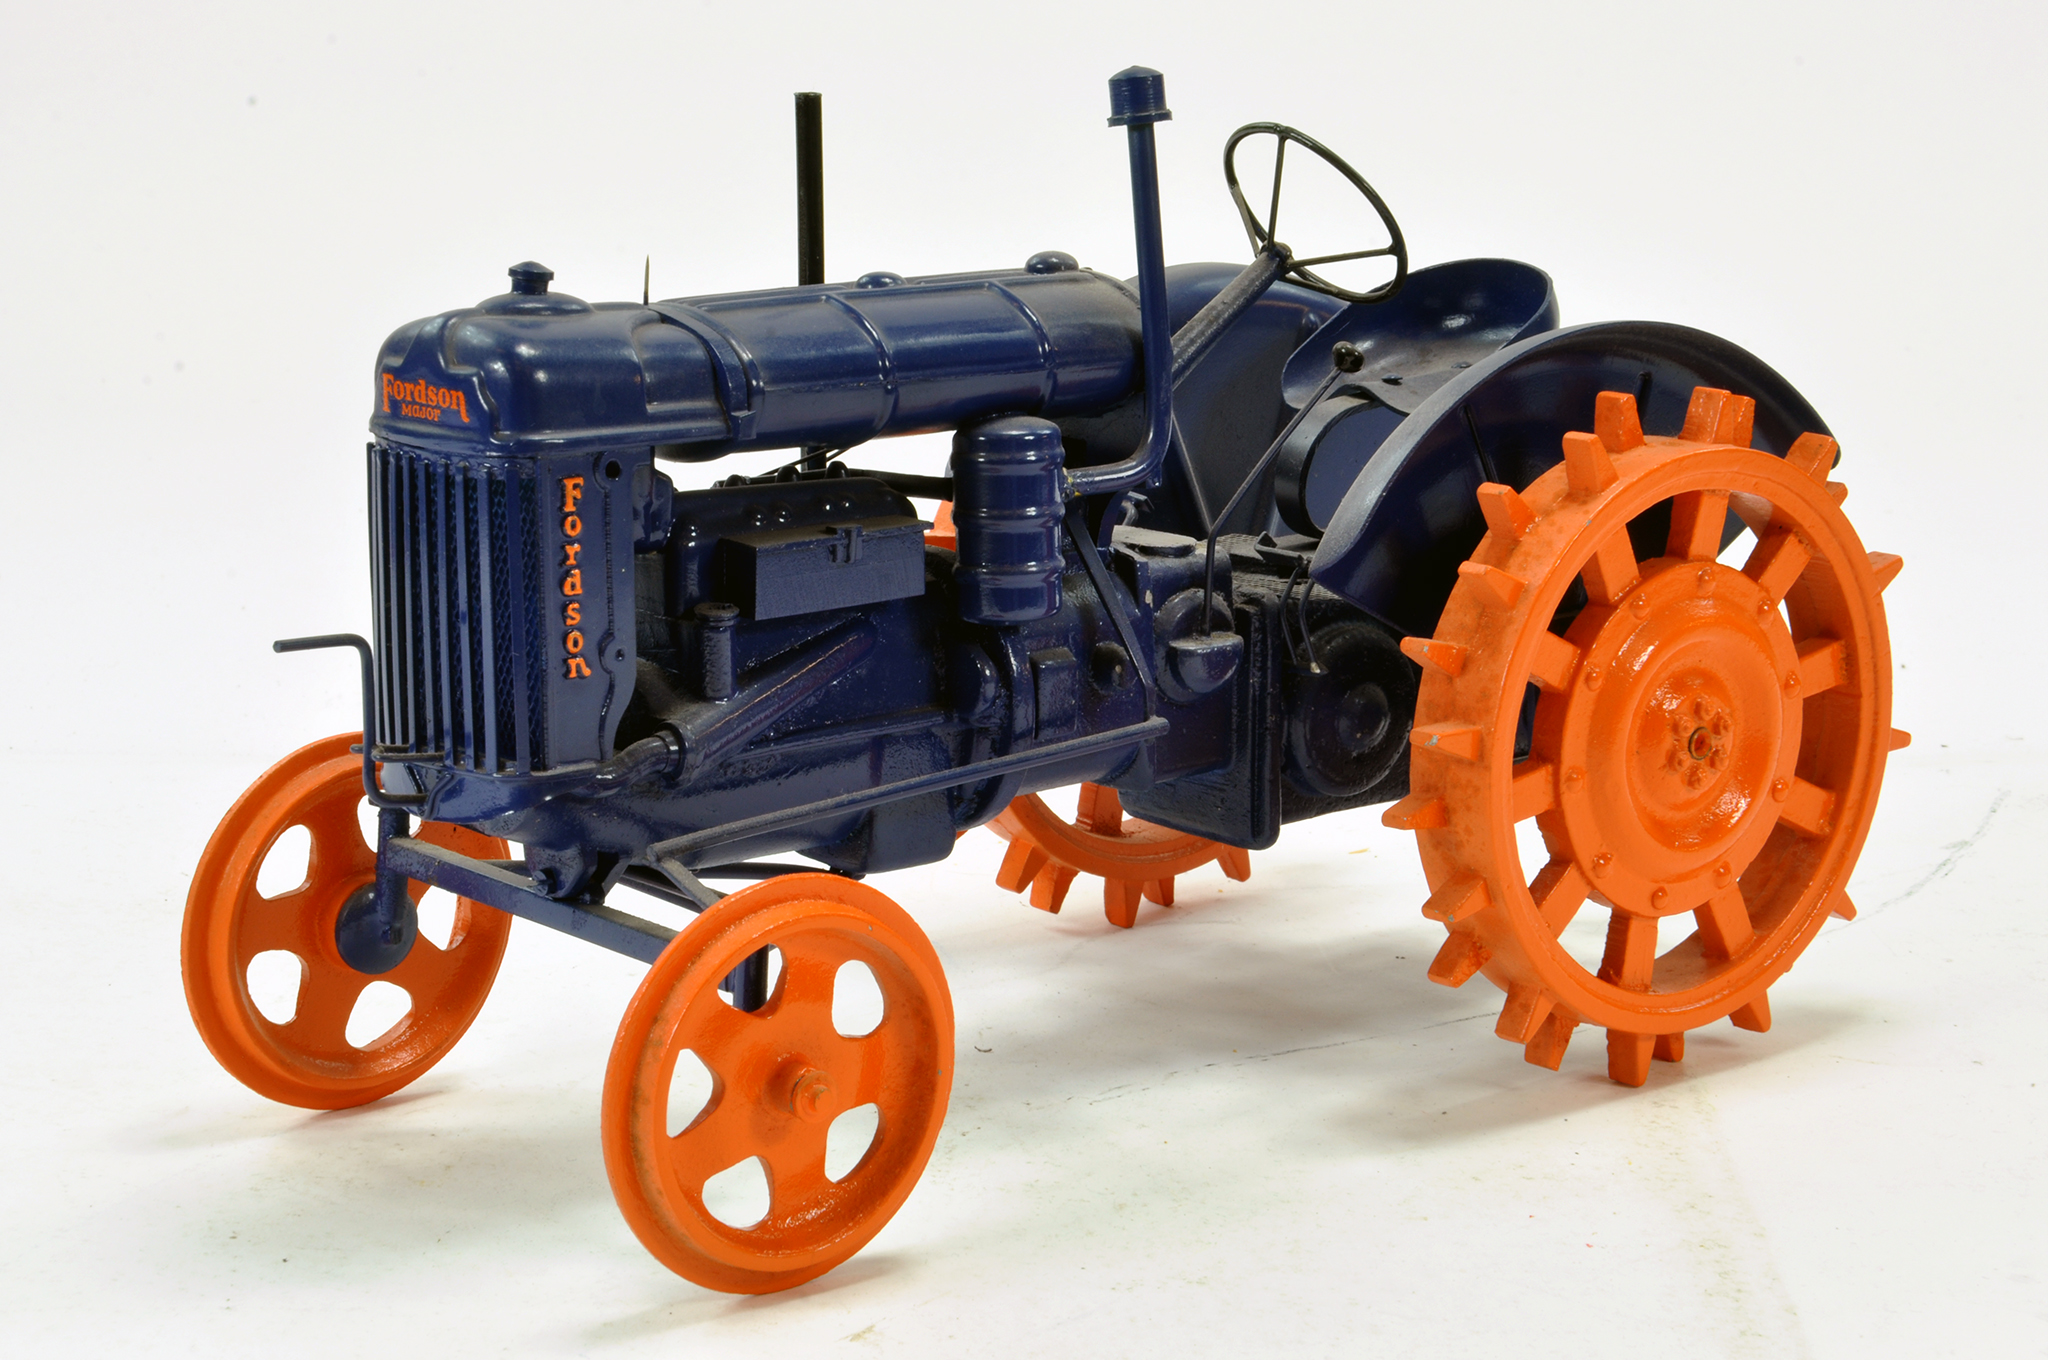 Lot 556 - Mike Karslake 1/12 Hand Built Fordson Major E27N Tractor on Metal Wheels. This very special